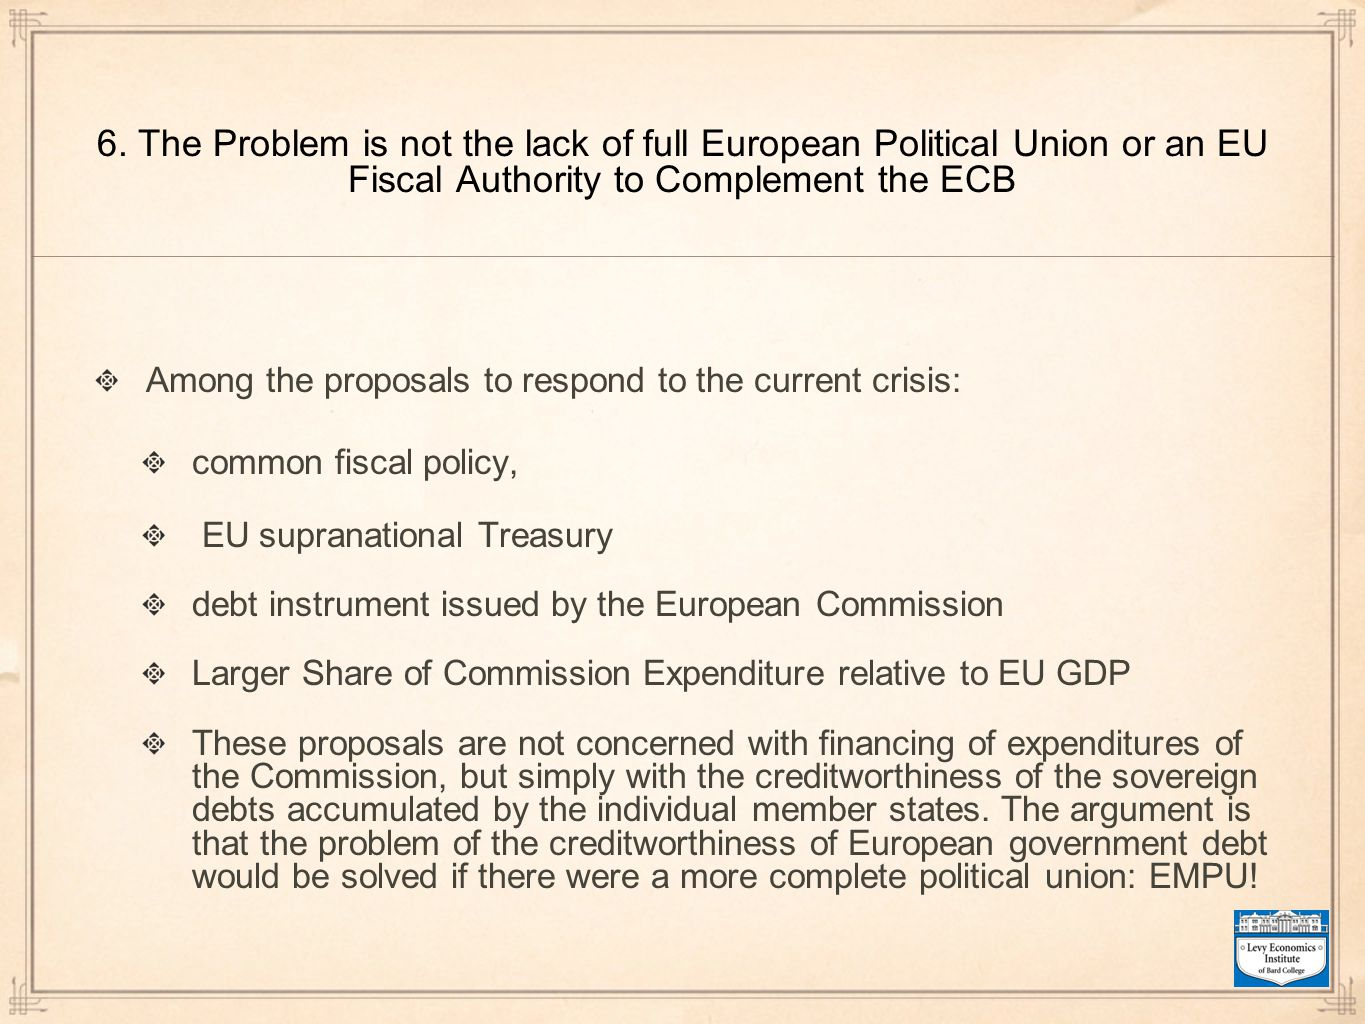 6. The Problem is not the lack of full European Political Union or an EU Fiscal Authority to Complement the ECB